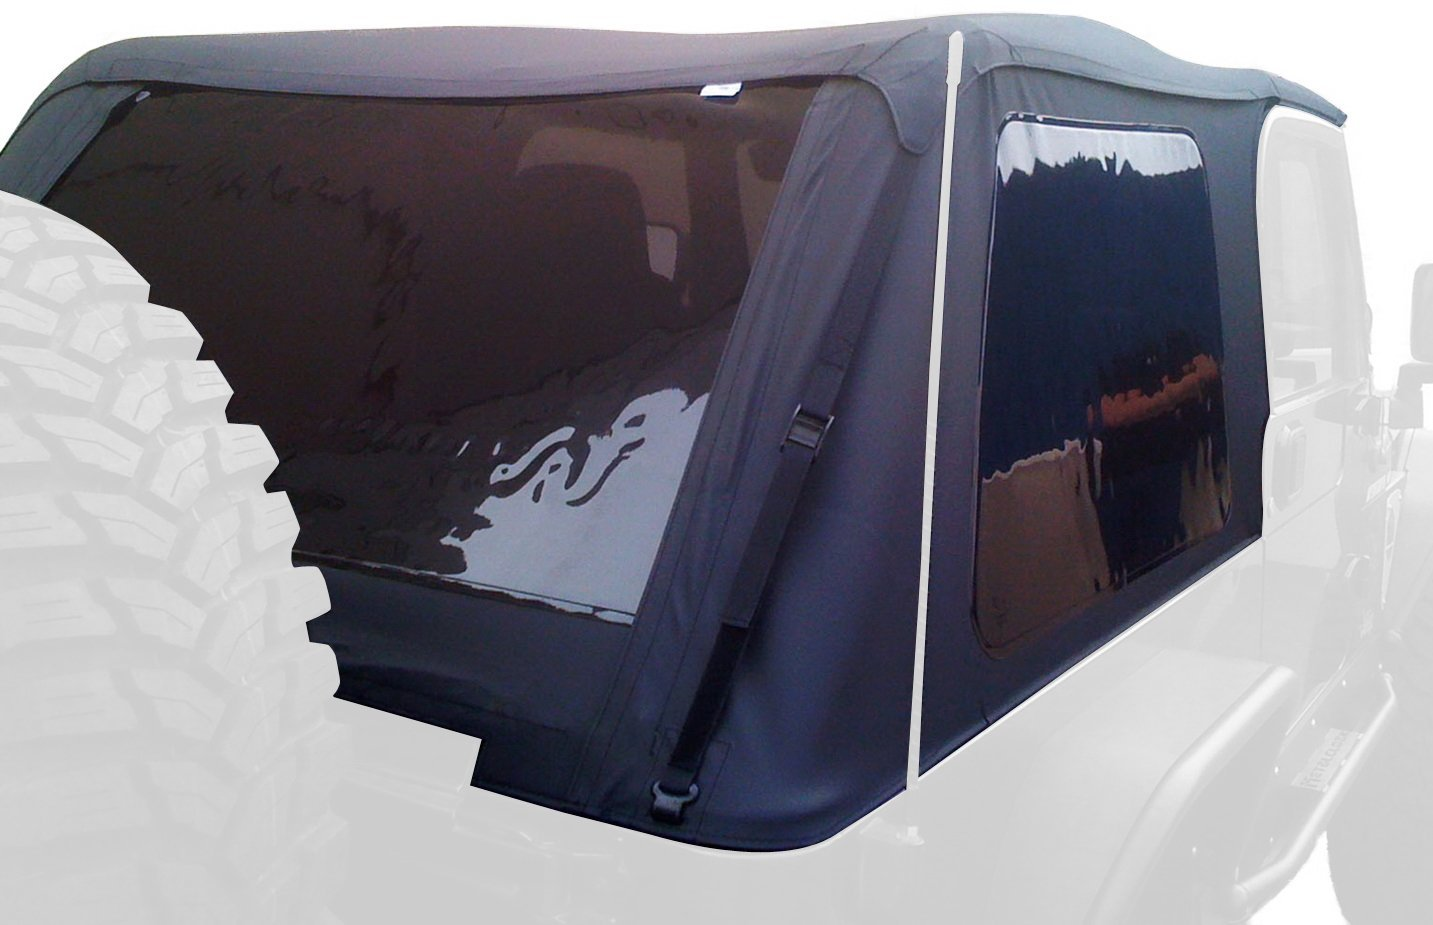 sale delaware unlimited door ml jeep wrangler used doors for in vehicles w buysellsearch mk on willys cars wheeler